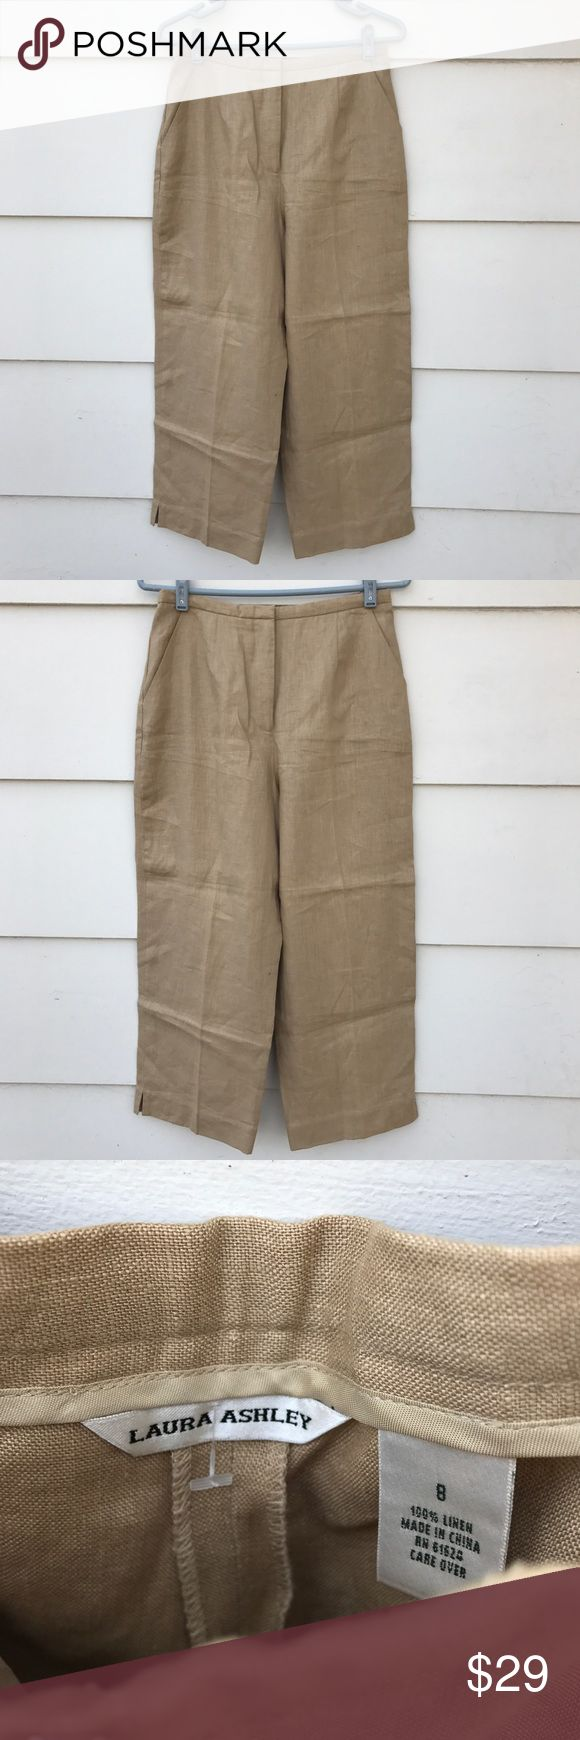 "Laura Ashley Women CHINCHILLA Capri Cropped Pants Lovely Laura Ashley women's Chinchilla capri cropped pants tan/brown. Materials. 100% linen Size 8. Condition. New with tag. Measurements. waist 28"" inseam 24"" hip 36"" overall length 35"" Laura Ashley Pants Capris"